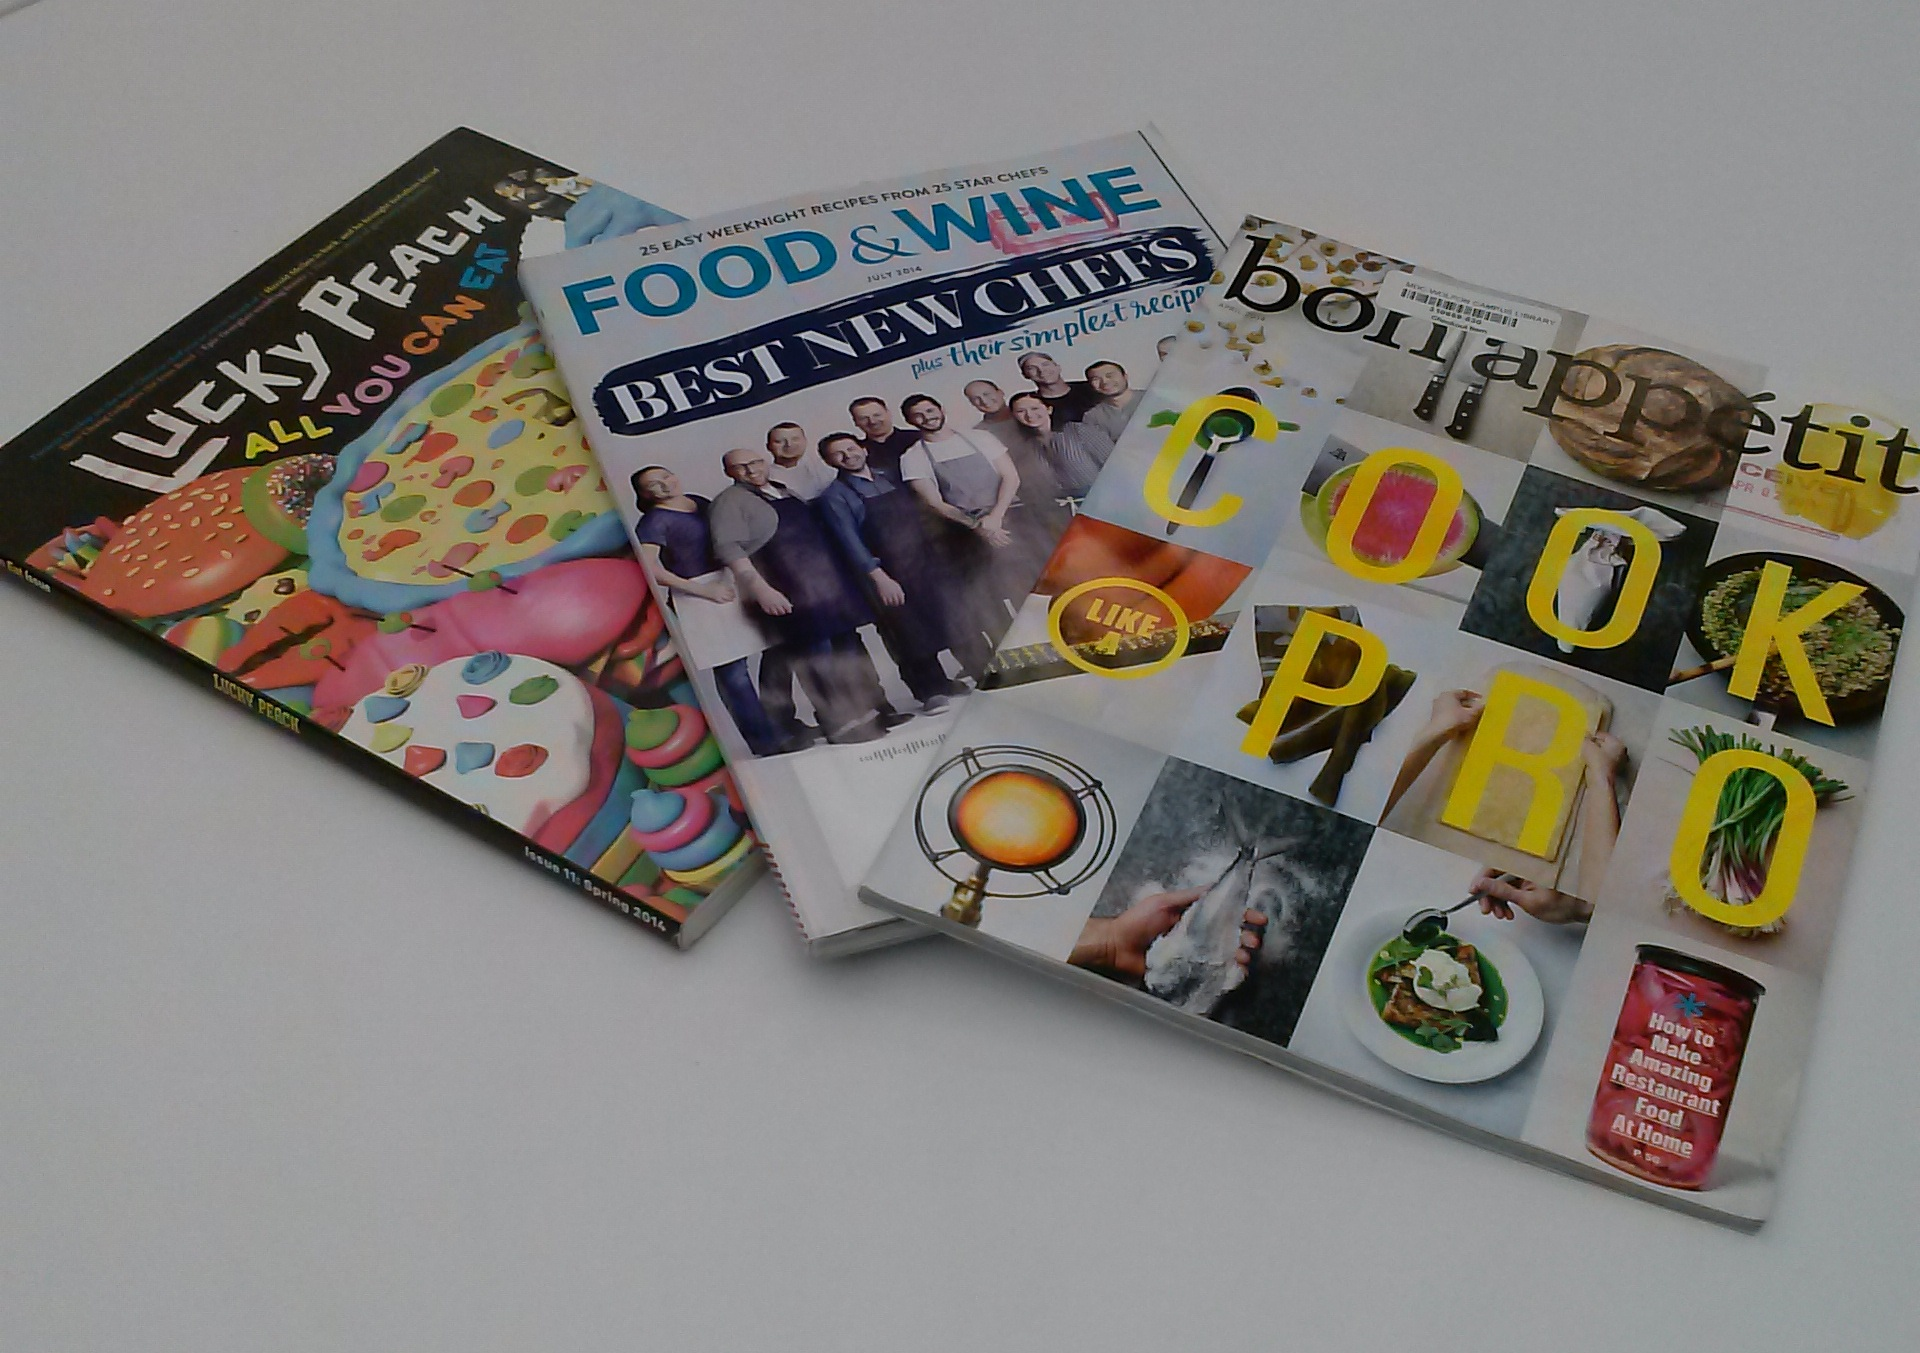 culinary magazine covers